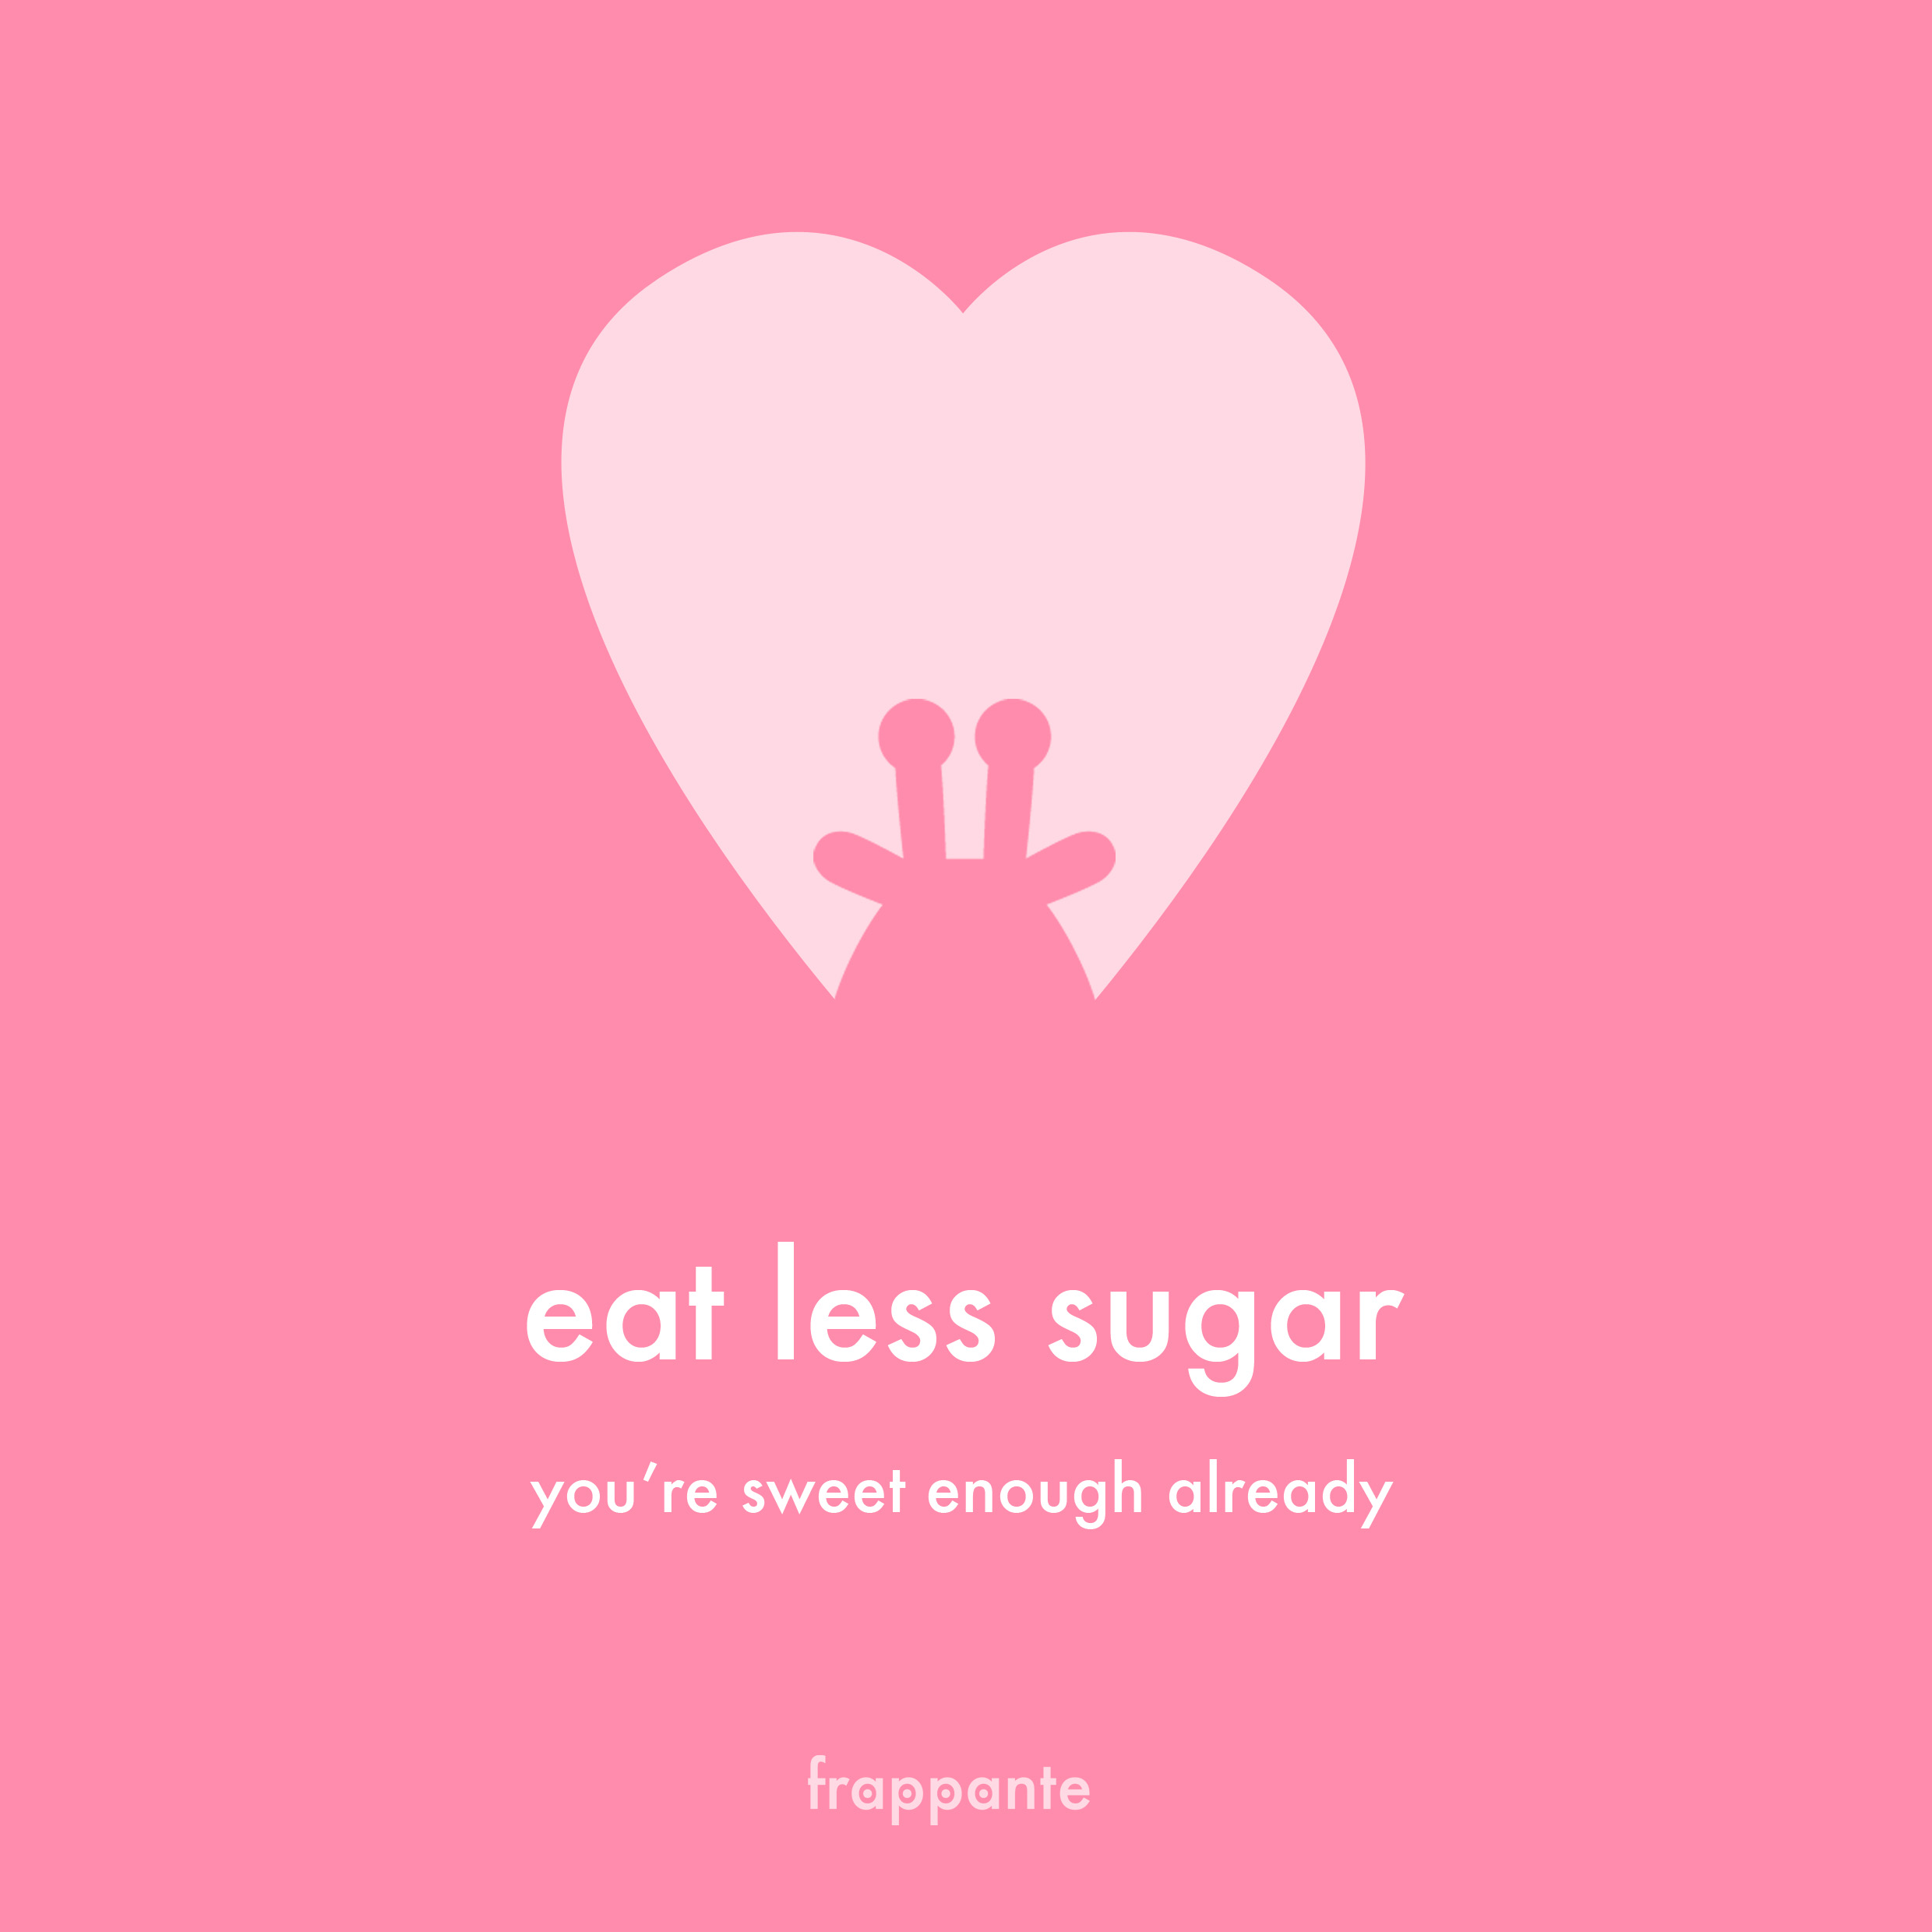 poster_eat less sugar.jpg